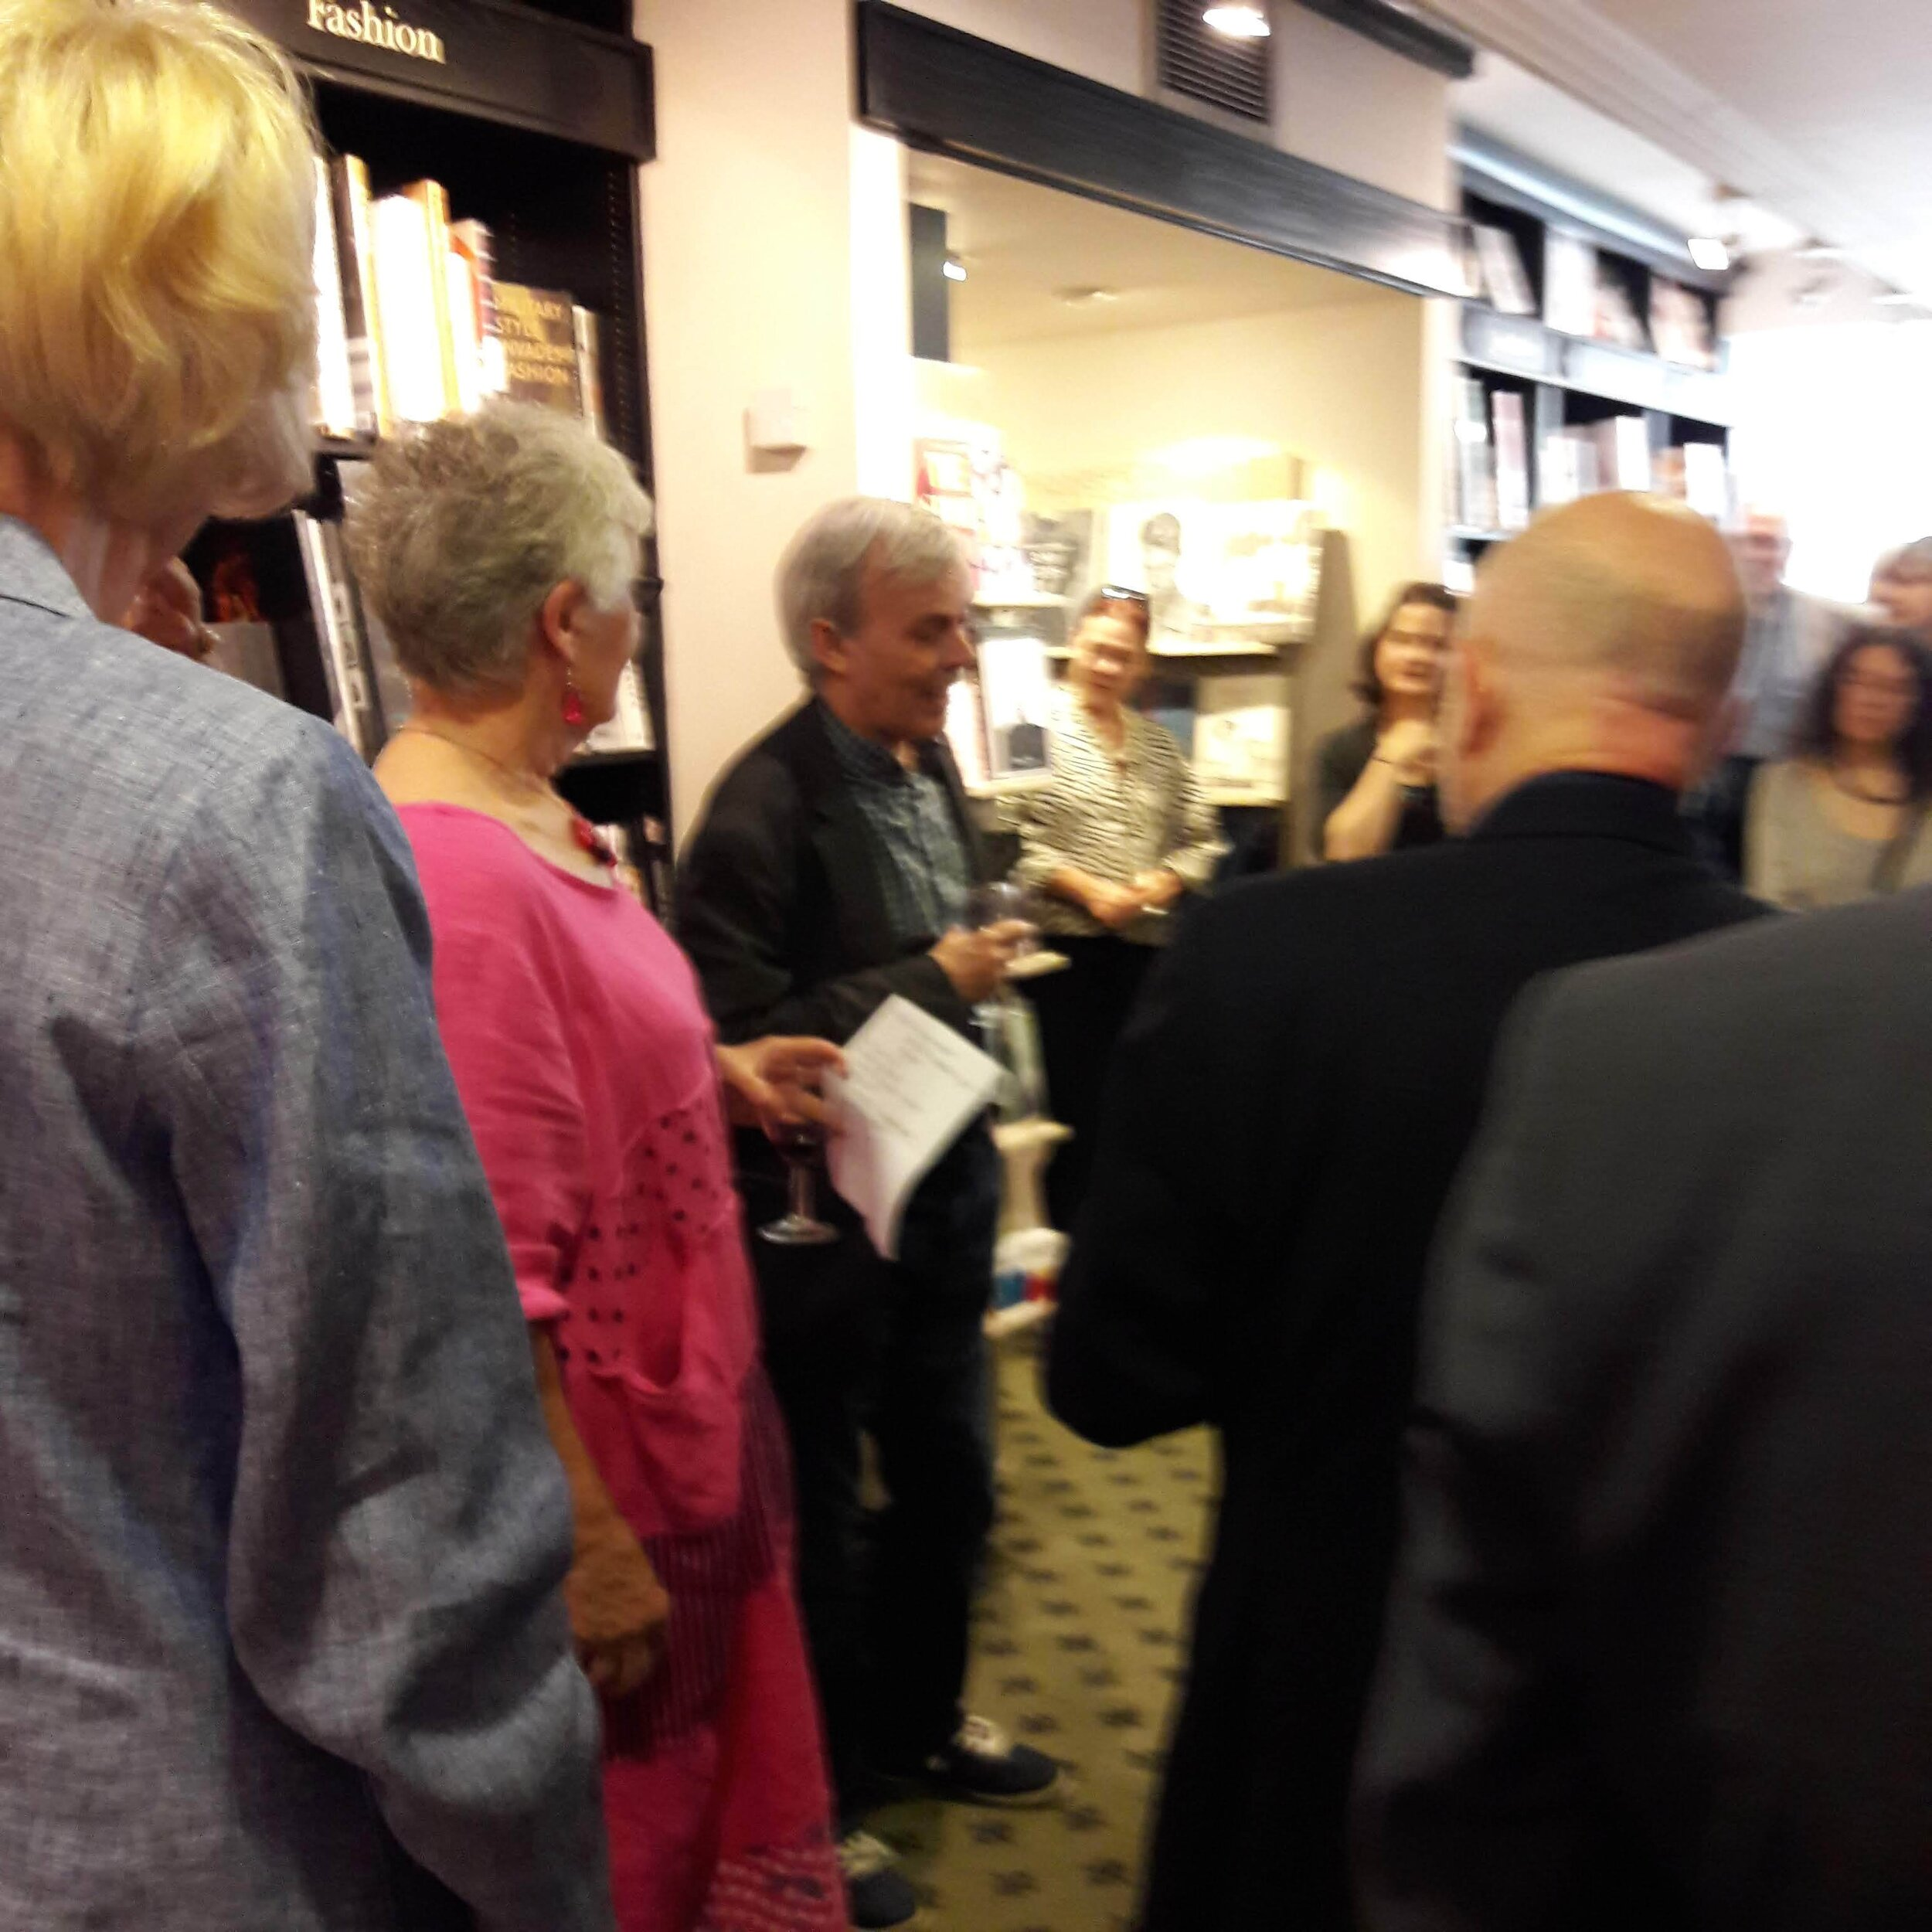 Martin Edwards at the launch of Taking Detective Stories Seriously, Hatchards Bookshop, London